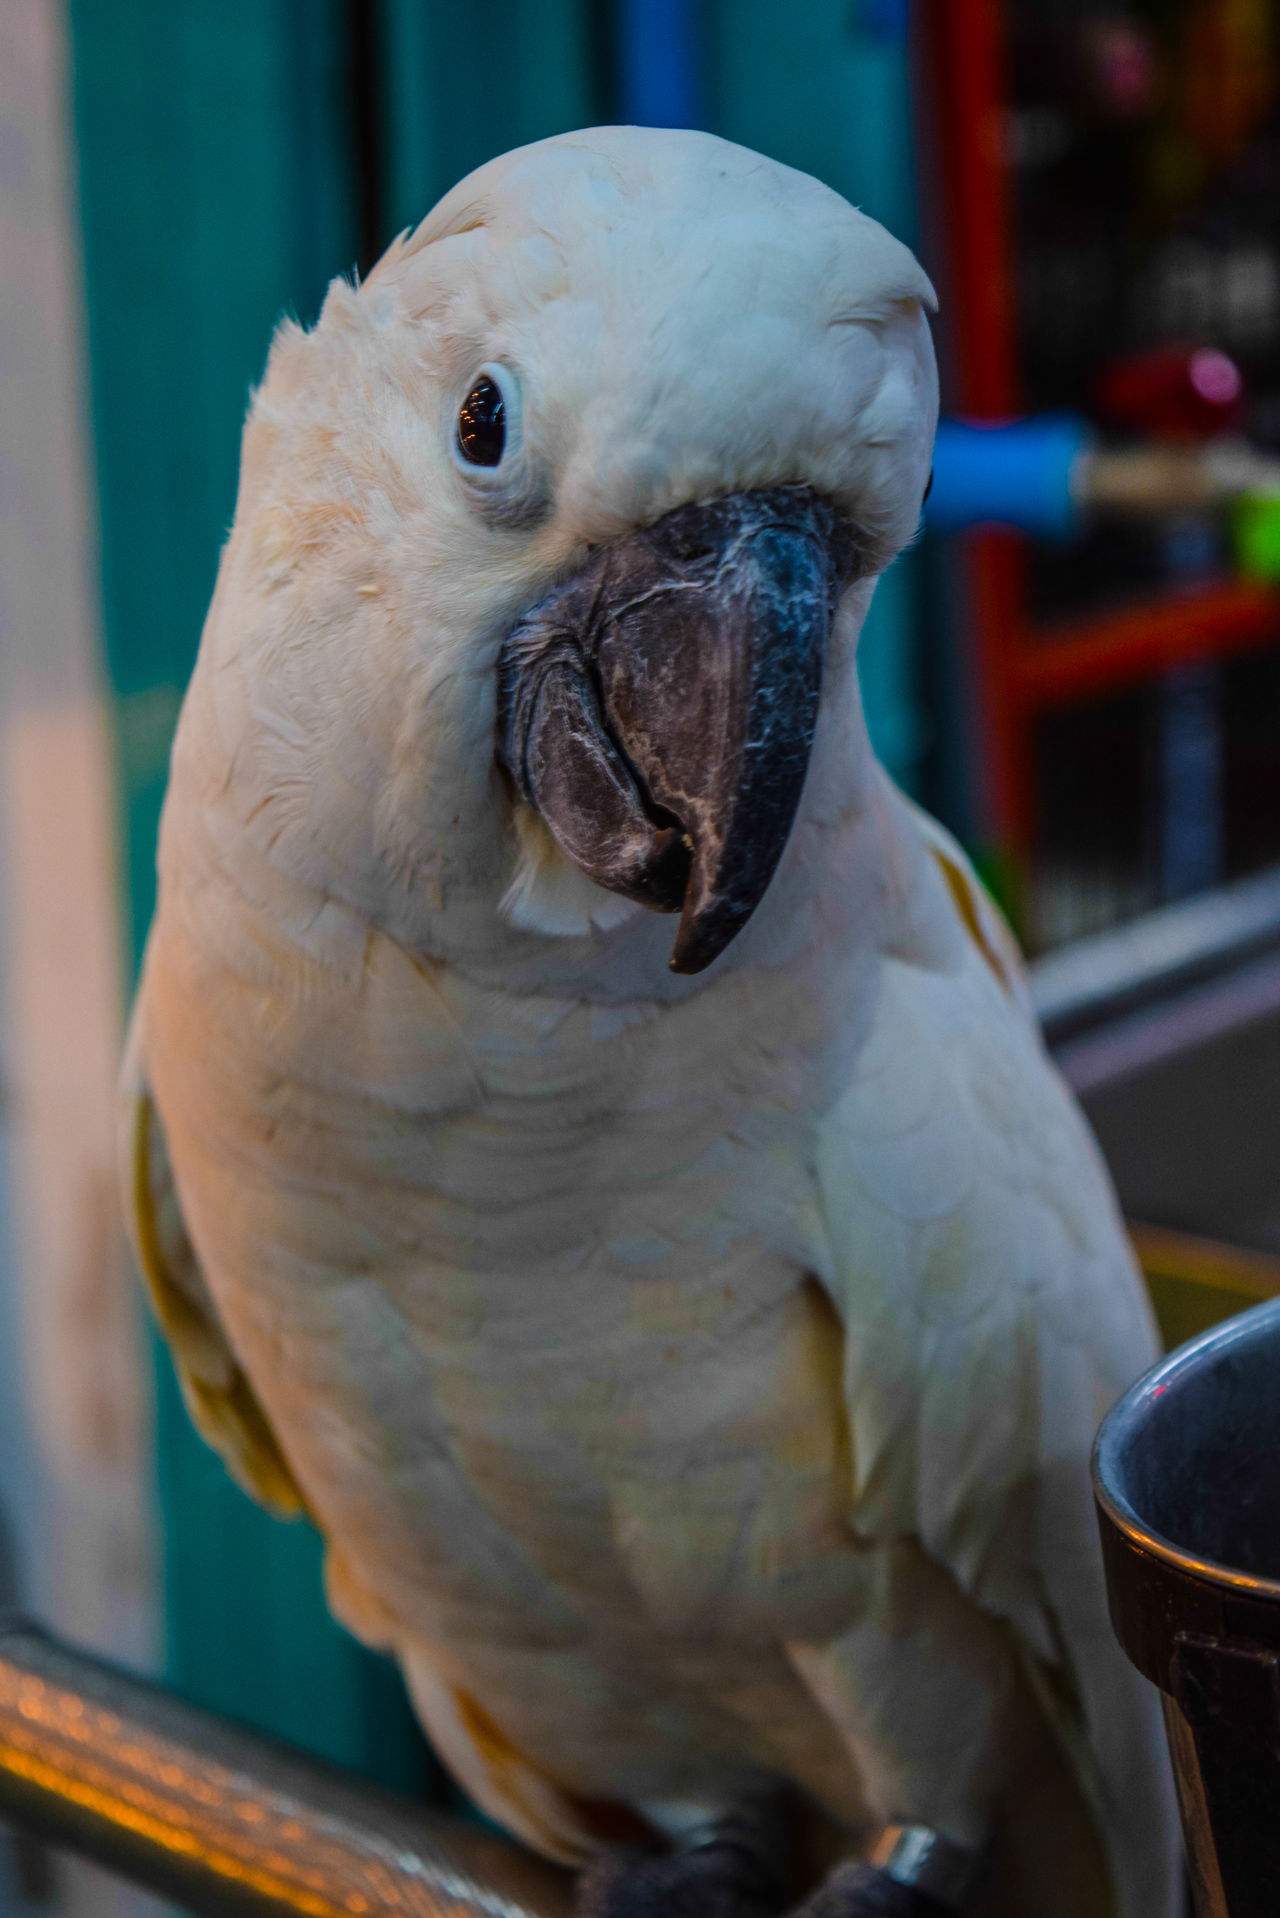 Bird นก Animal Themes Animal Wildlife Animals In The Wild Bird Close-up Cockatoo Day Nature No People One Animal Outdoors Parrot Perching นก